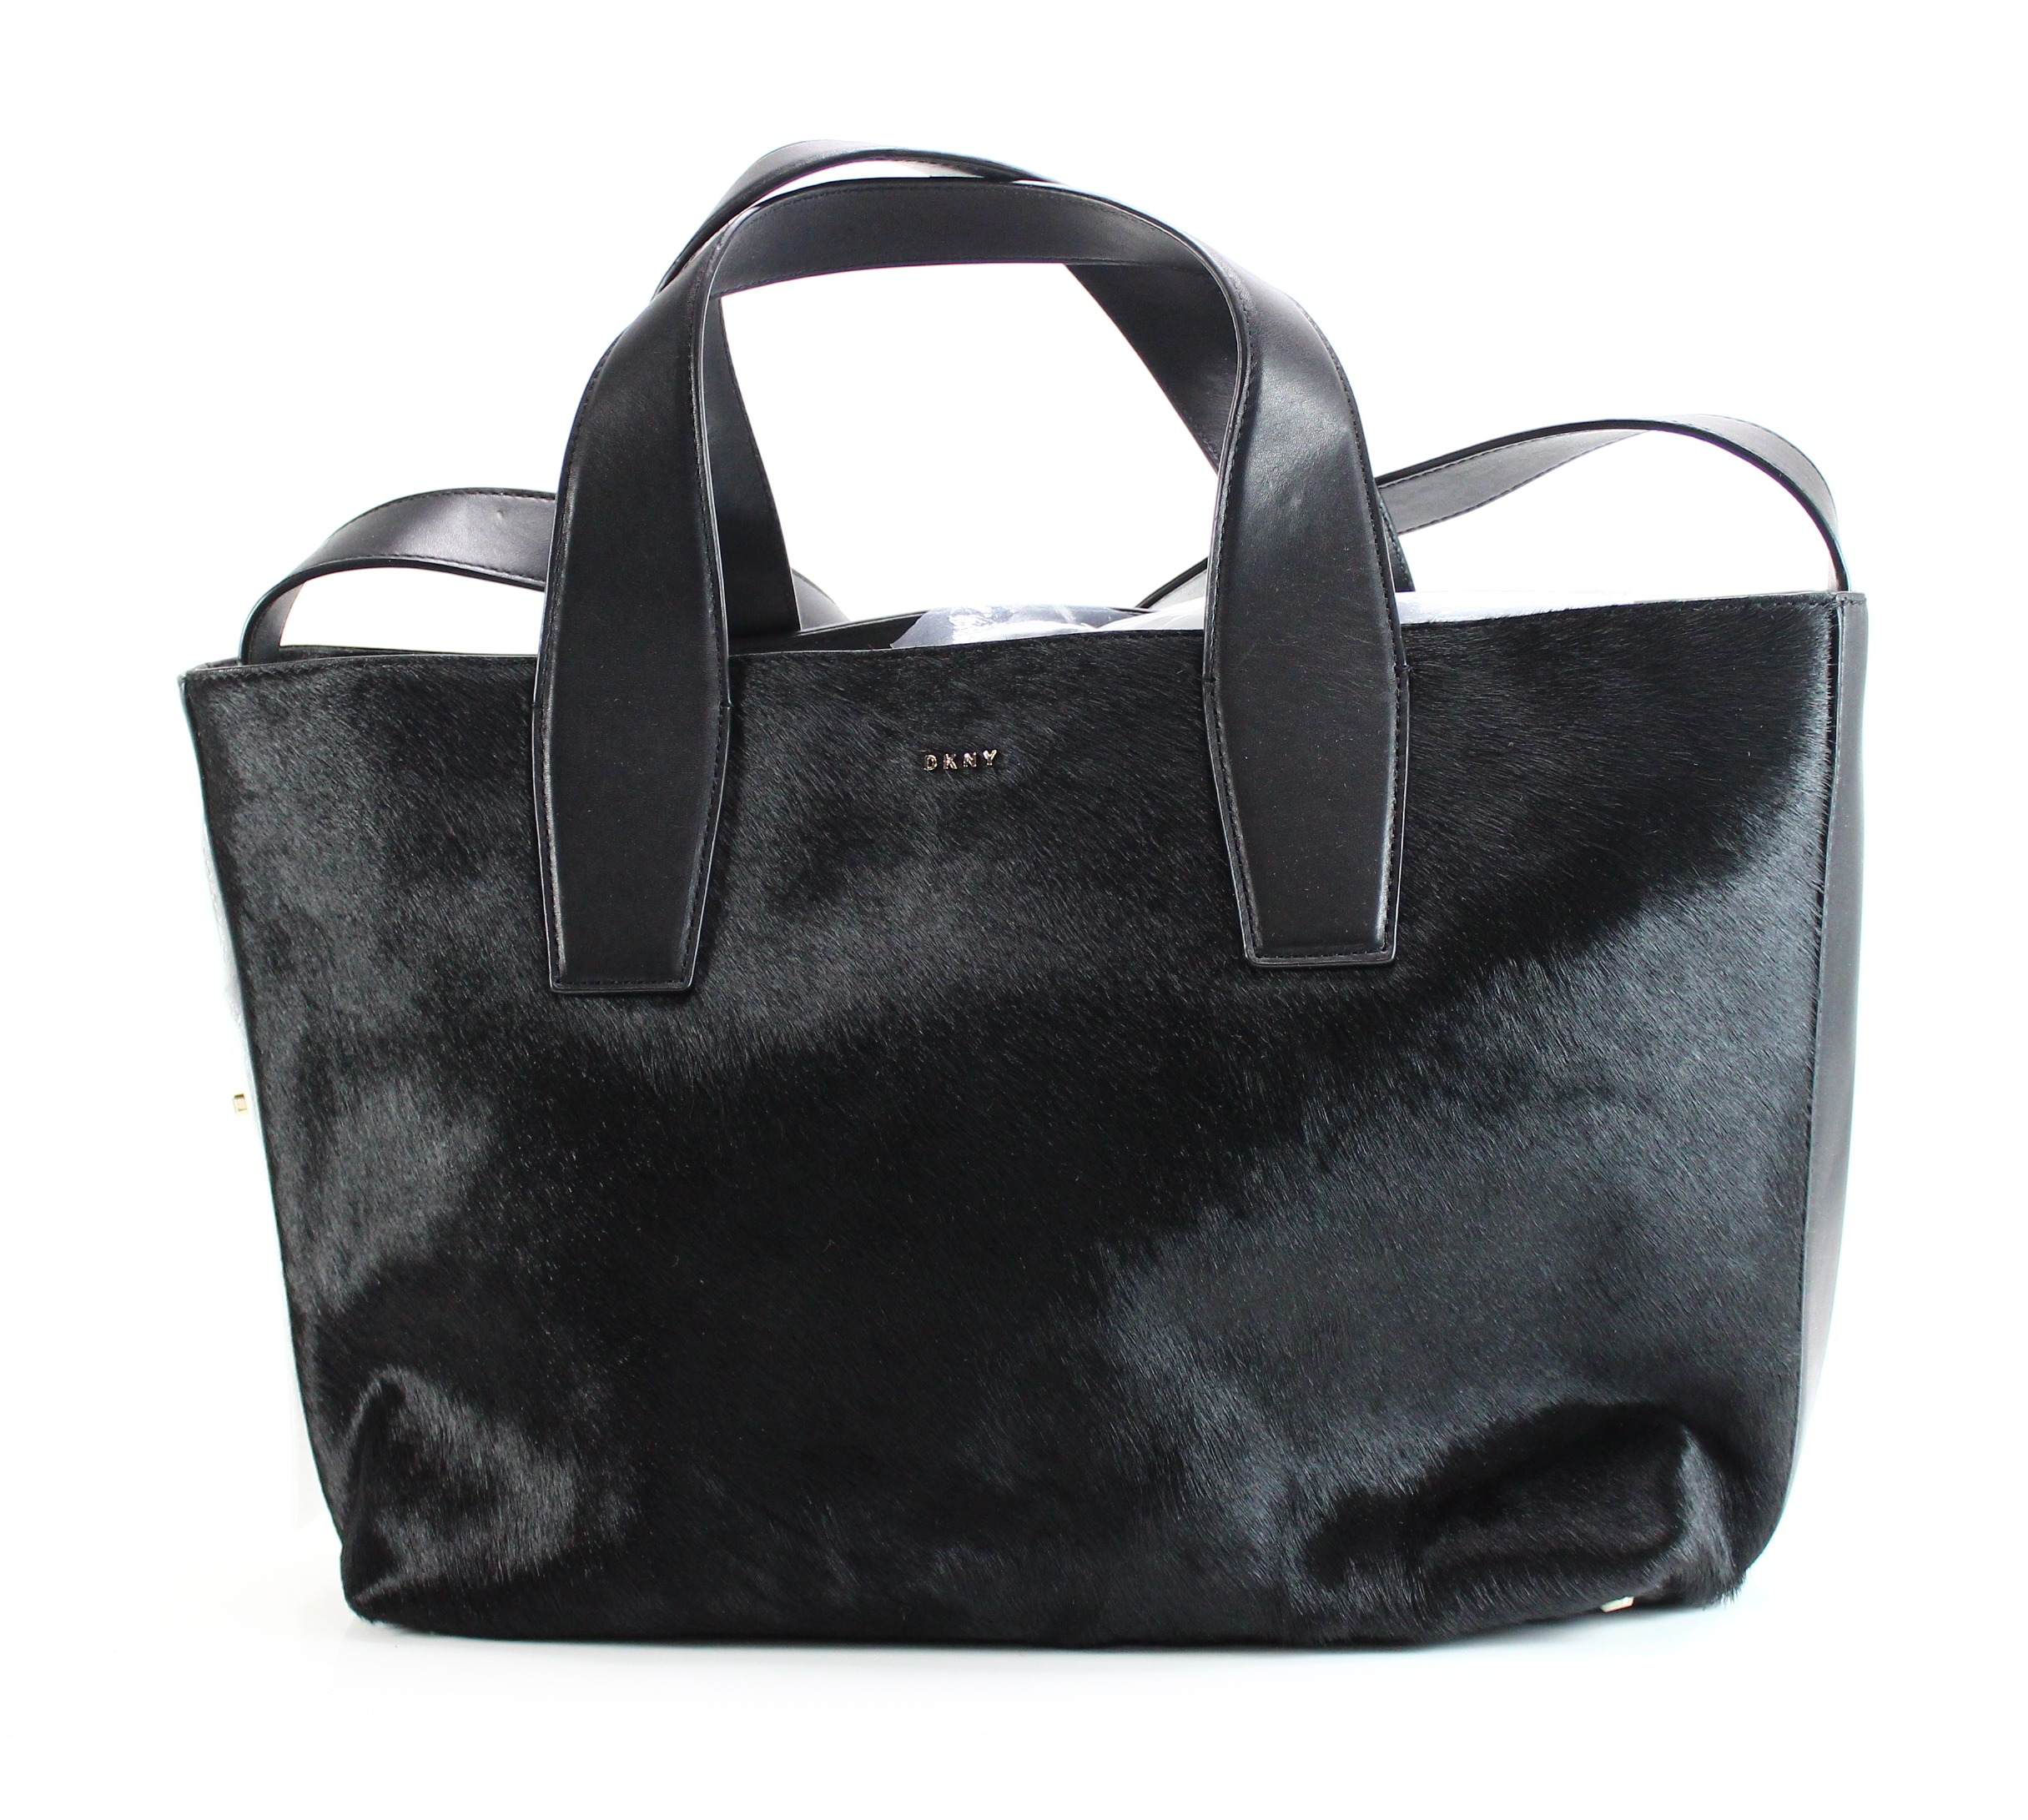 34c367b595938 Details about DKNY NEW Black Peggy Medium Tote Shopper Leather Handbag Purse   698-  015